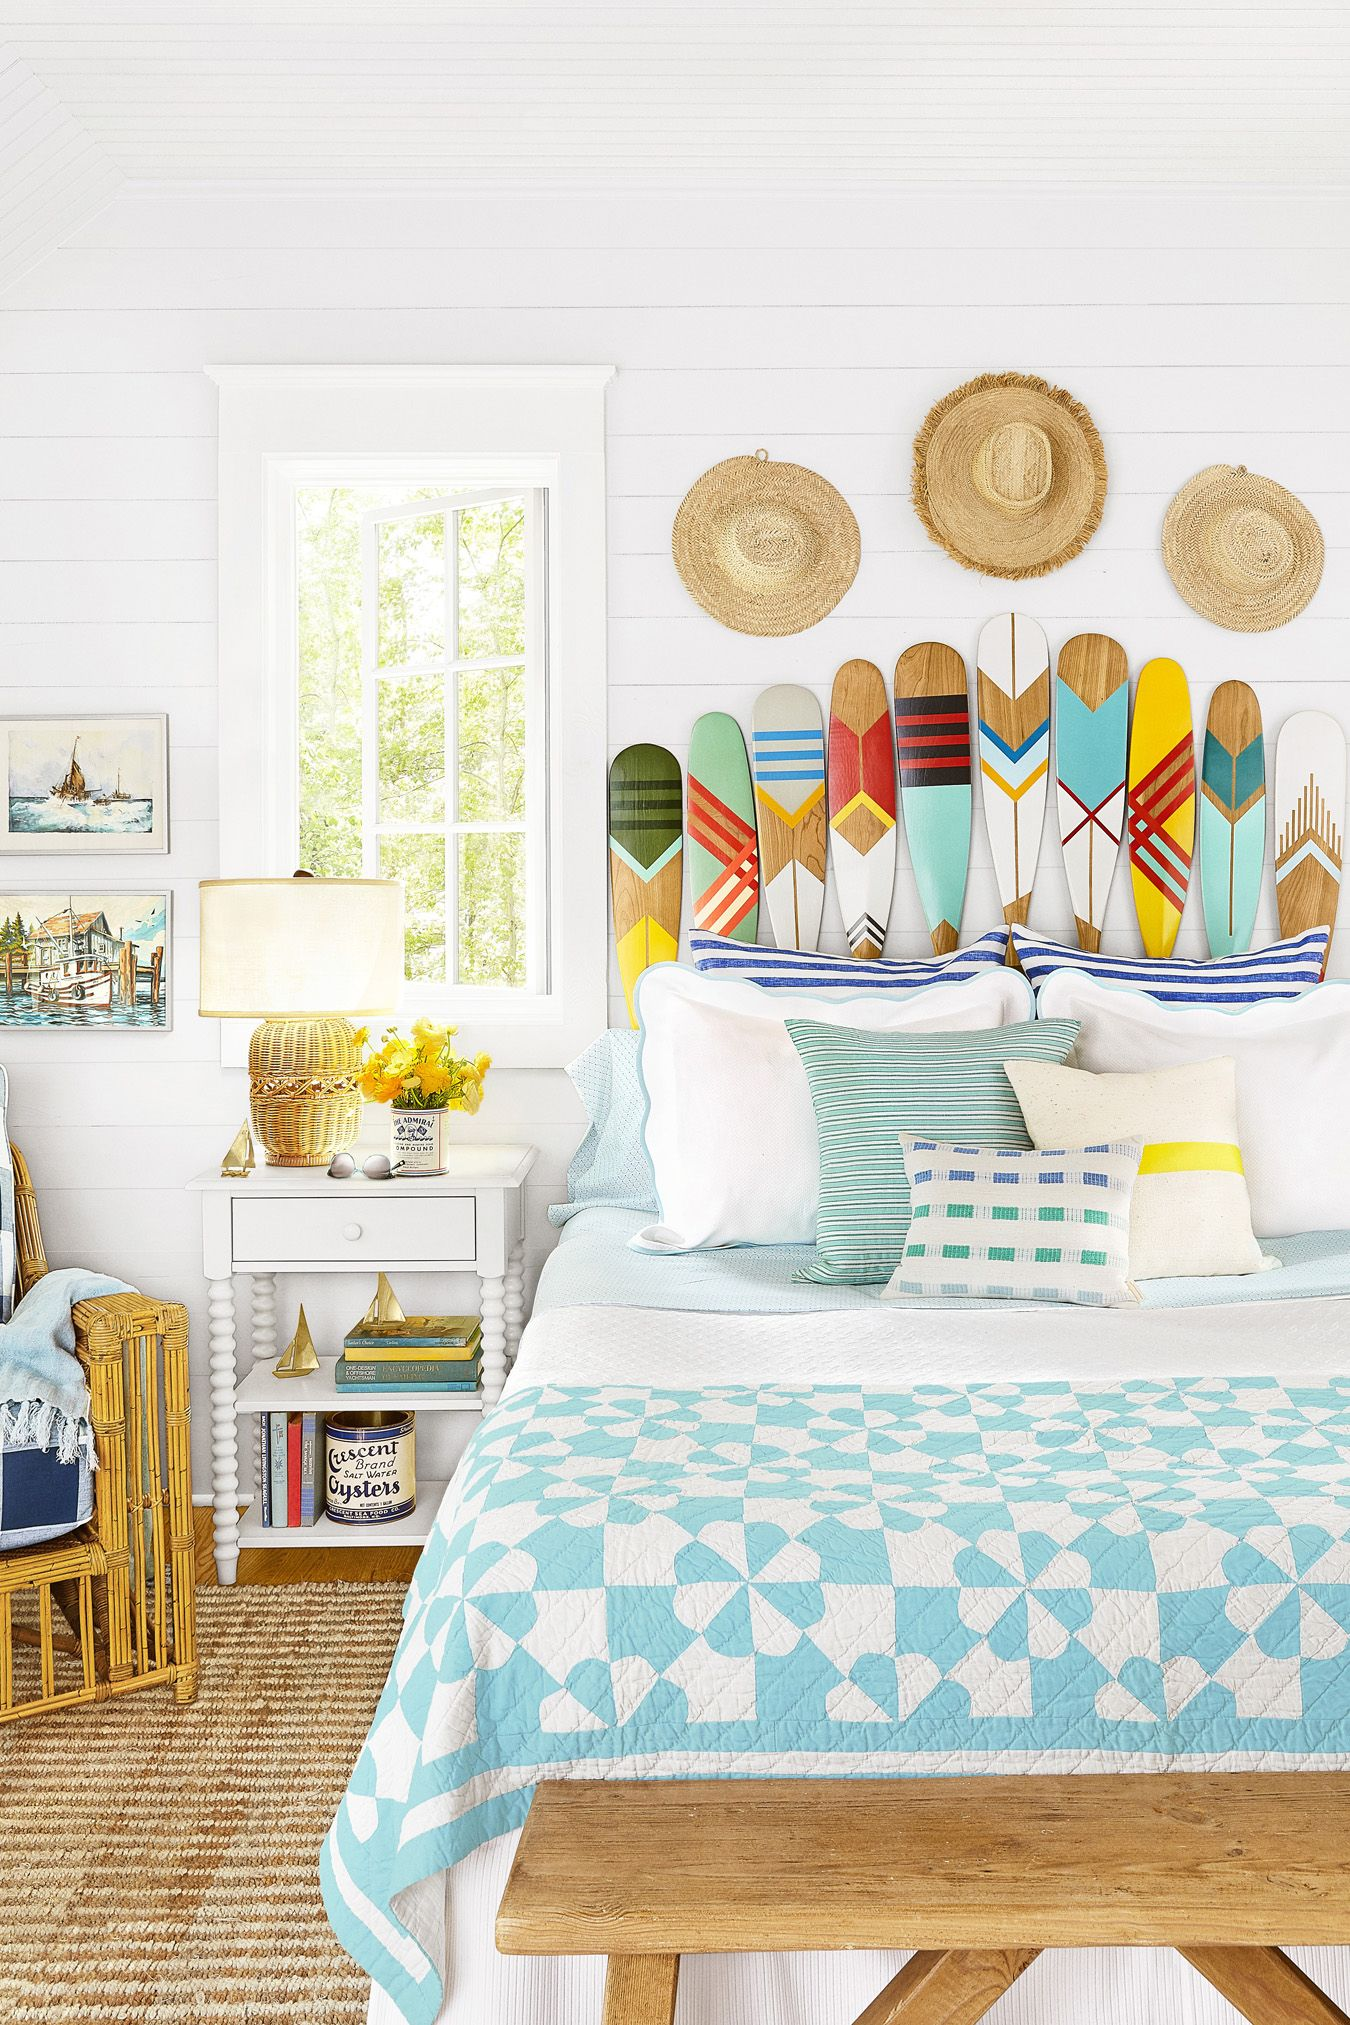 55 Fun Lake House Decor Ideas For Your Home And Backyard Lake House Decorating